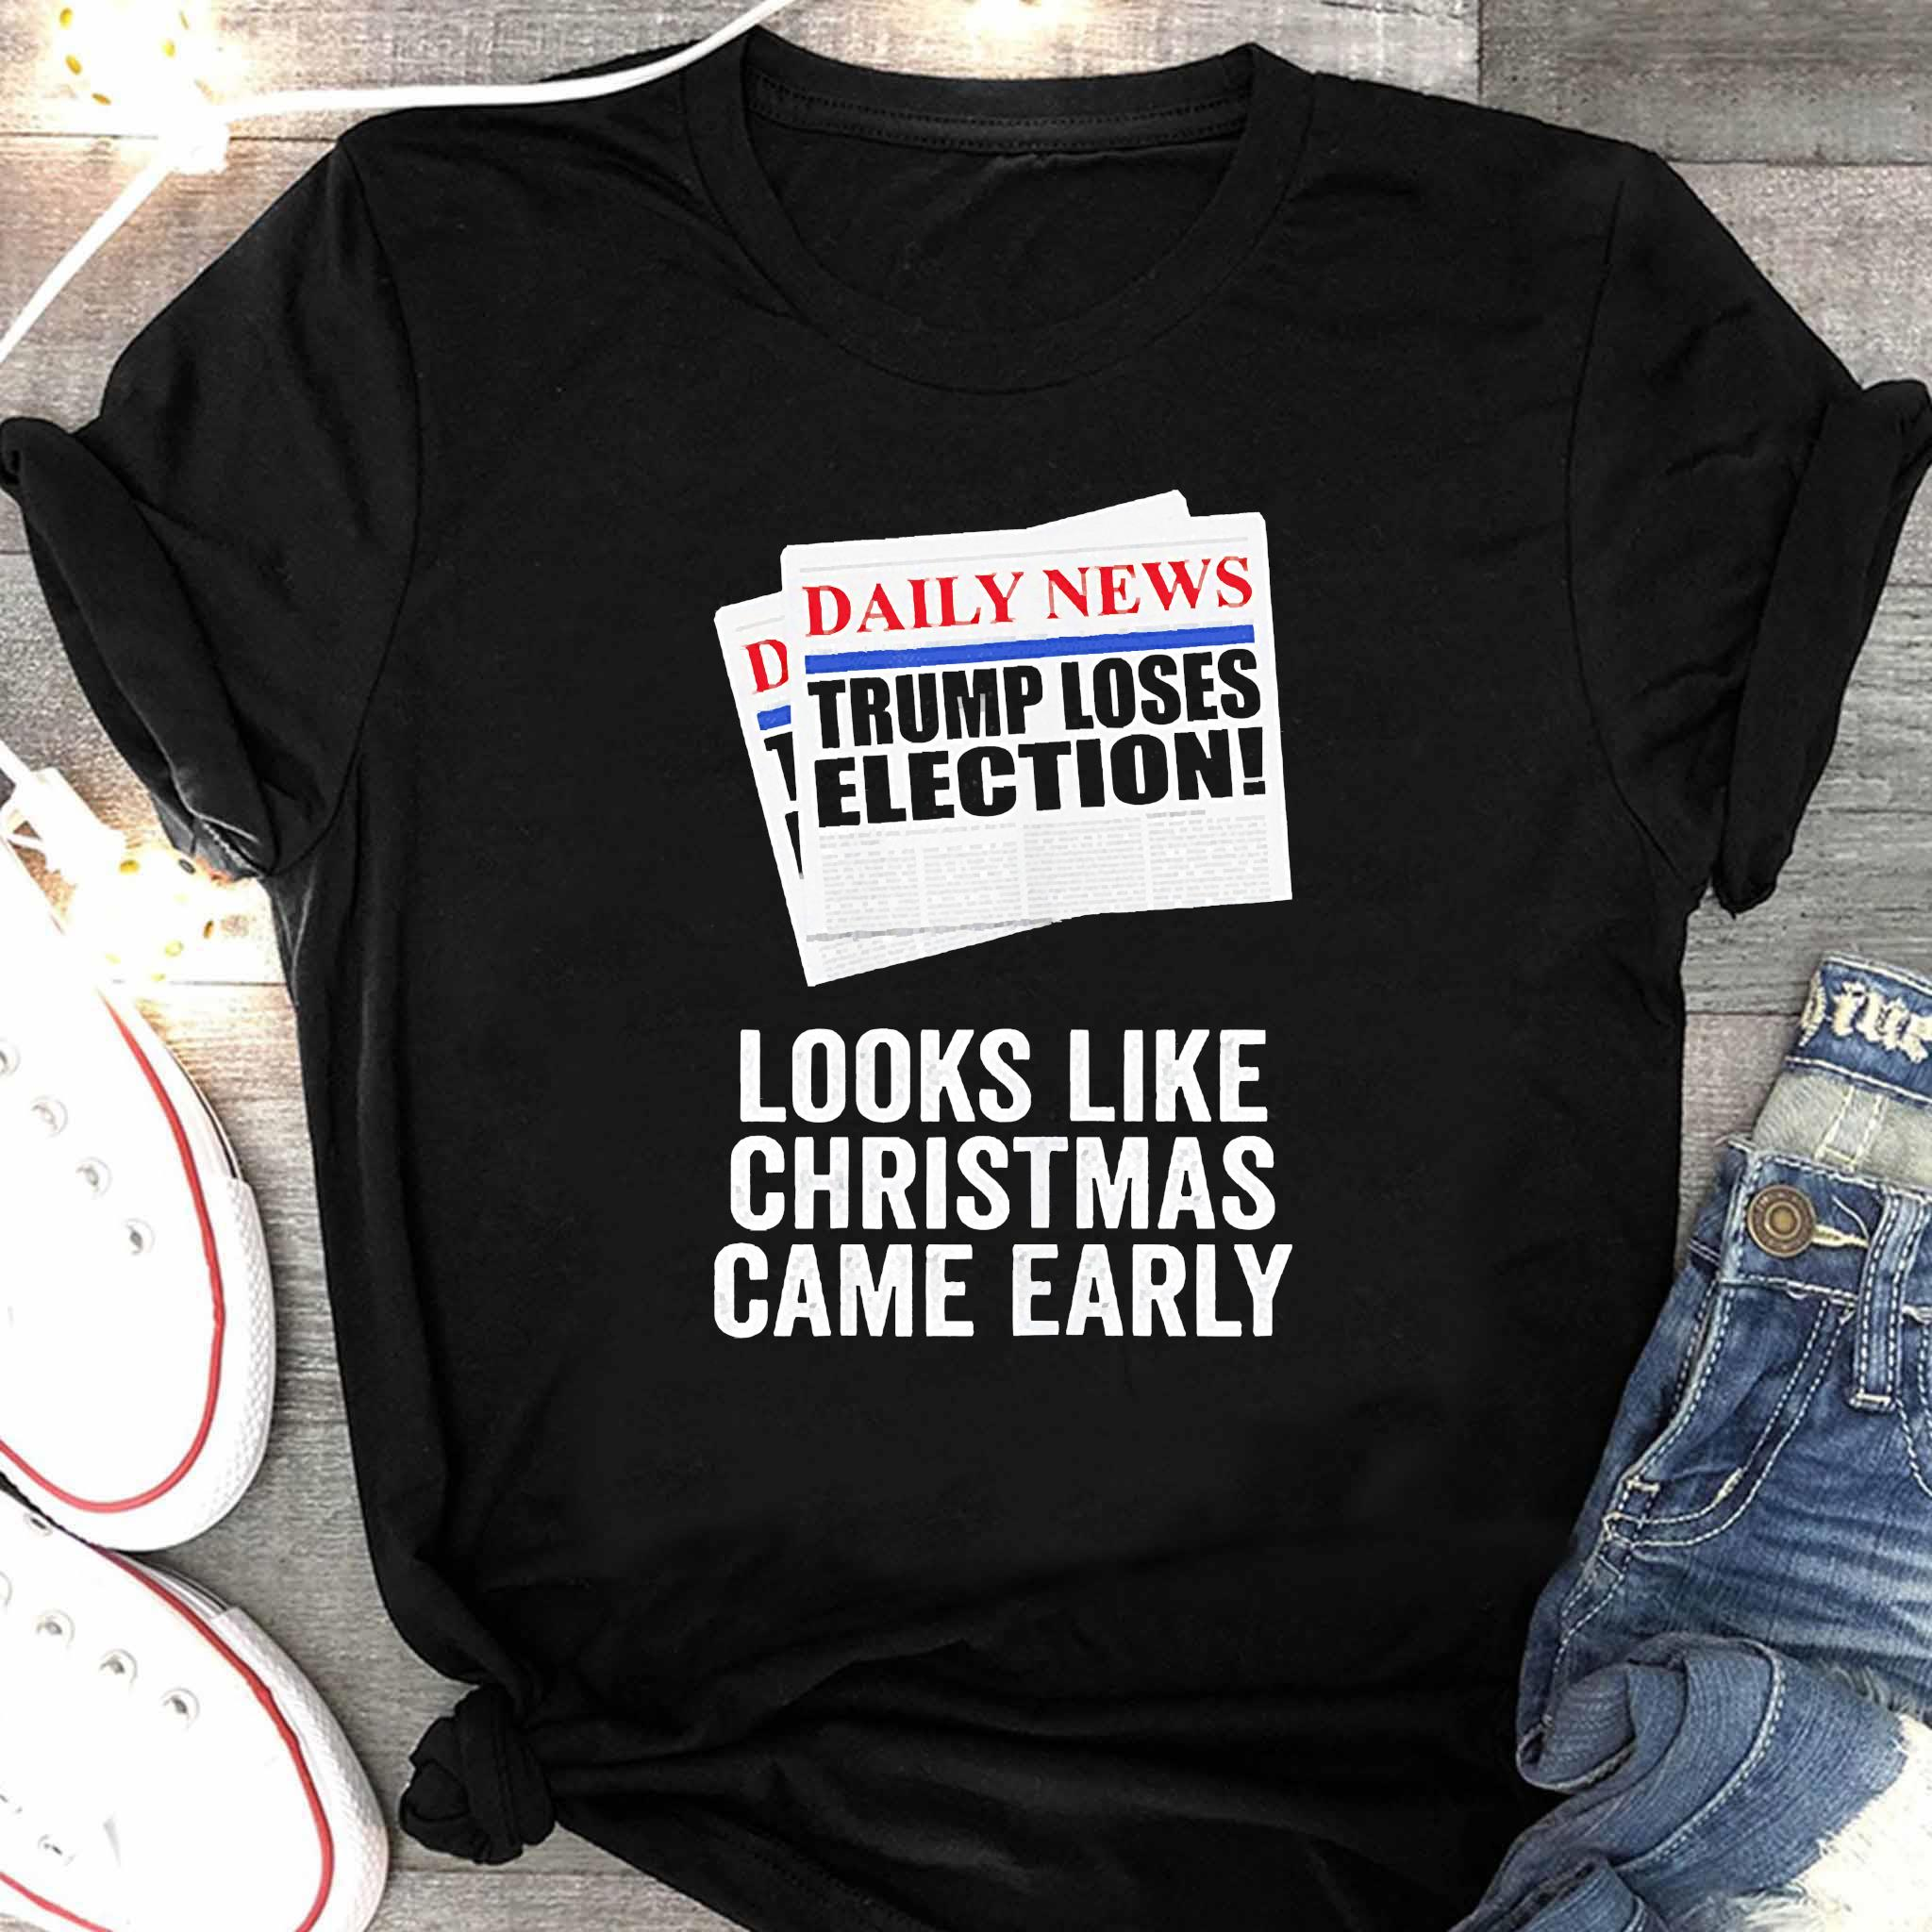 Trump Loses Election Looks Like Christmas Came Early 2020 Shirt Women's Shirt